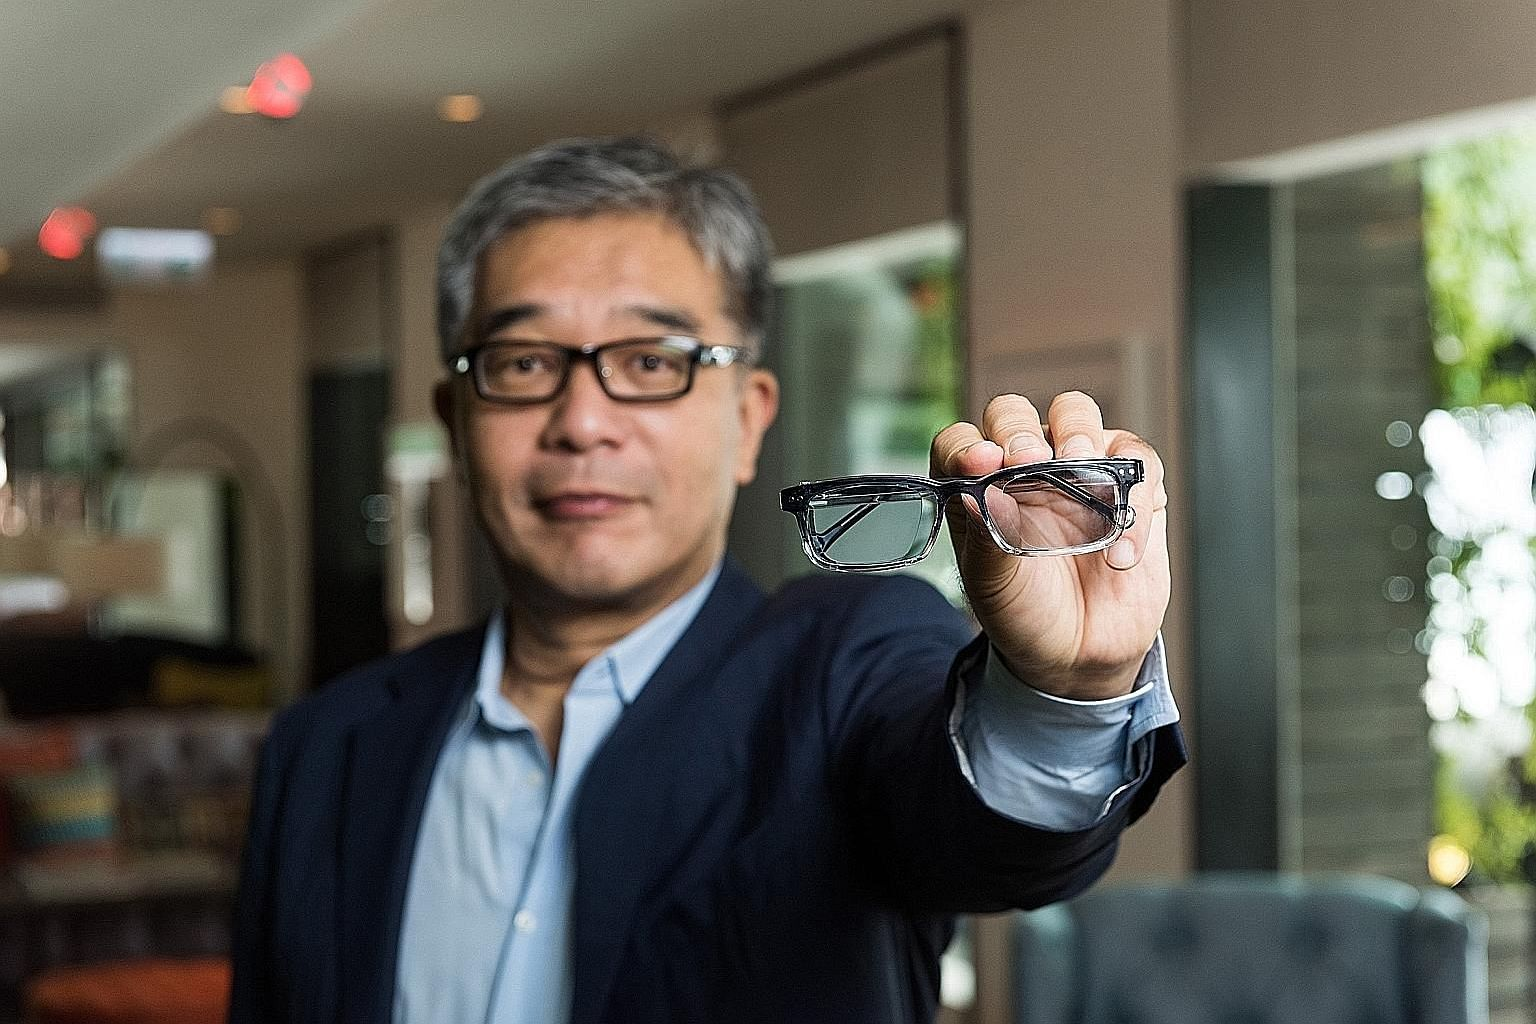 Venture philanthropist James Chen launched the Clearly campaign in 2016 to advocate greater action to tackle the global crisis of poor vision, and champion innovations to do so.